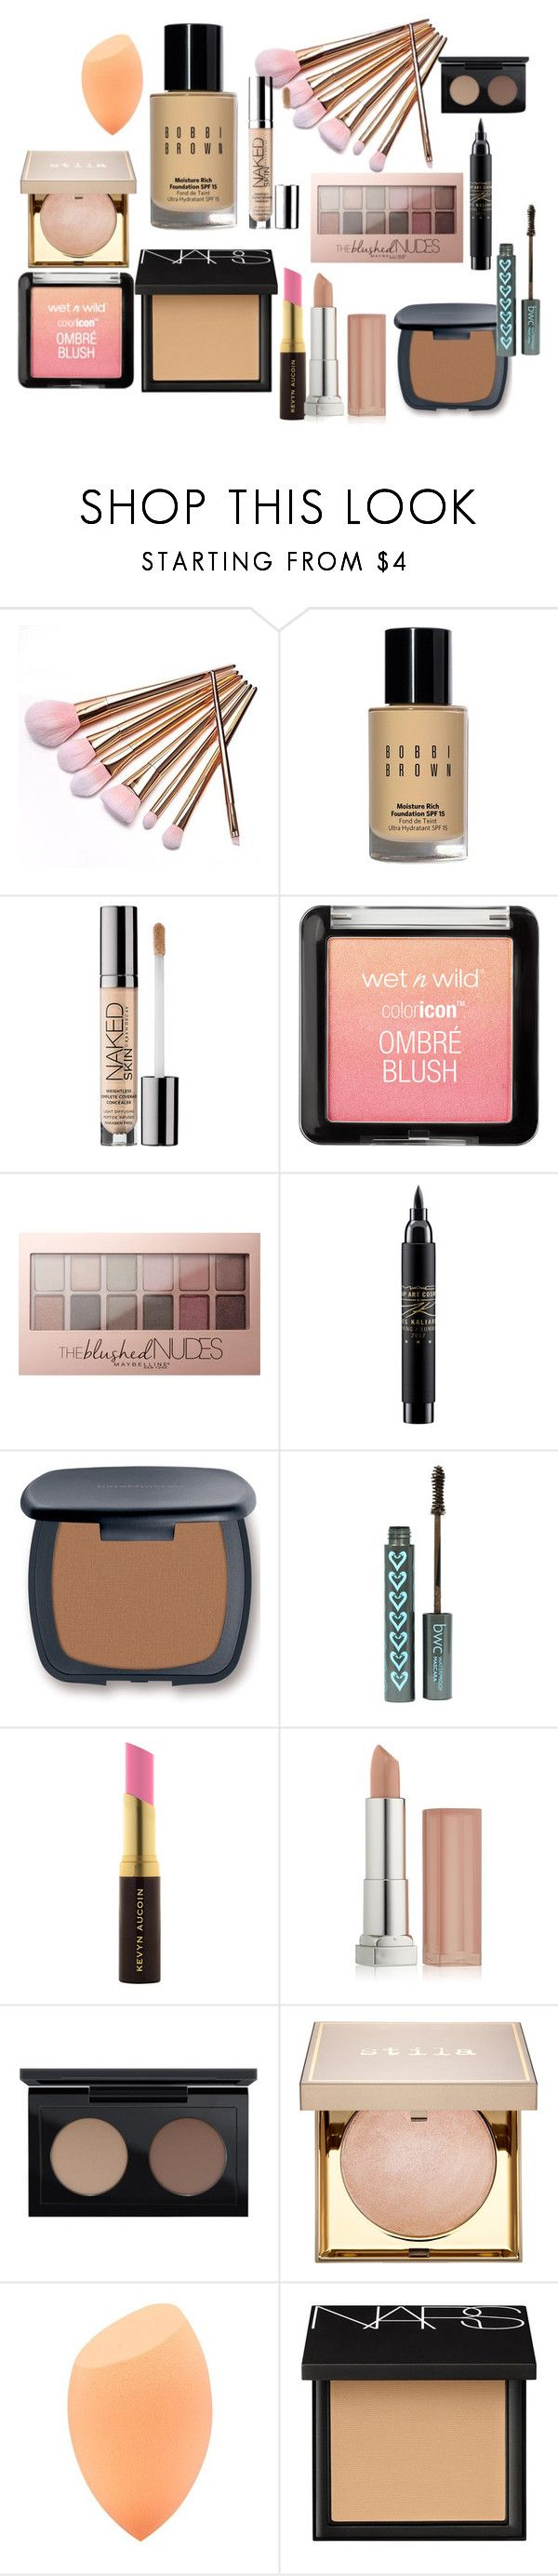 """""""Make up look!"""" by fashiongeekro ❤ liked on Polyvore featuring beauty, Bobbi Brown Cosmetics, Urban Decay, Maybelline, MAC Cosmetics, Bare Escentuals, Kevyn Aucoin, Stila and NARS Cosmetics"""